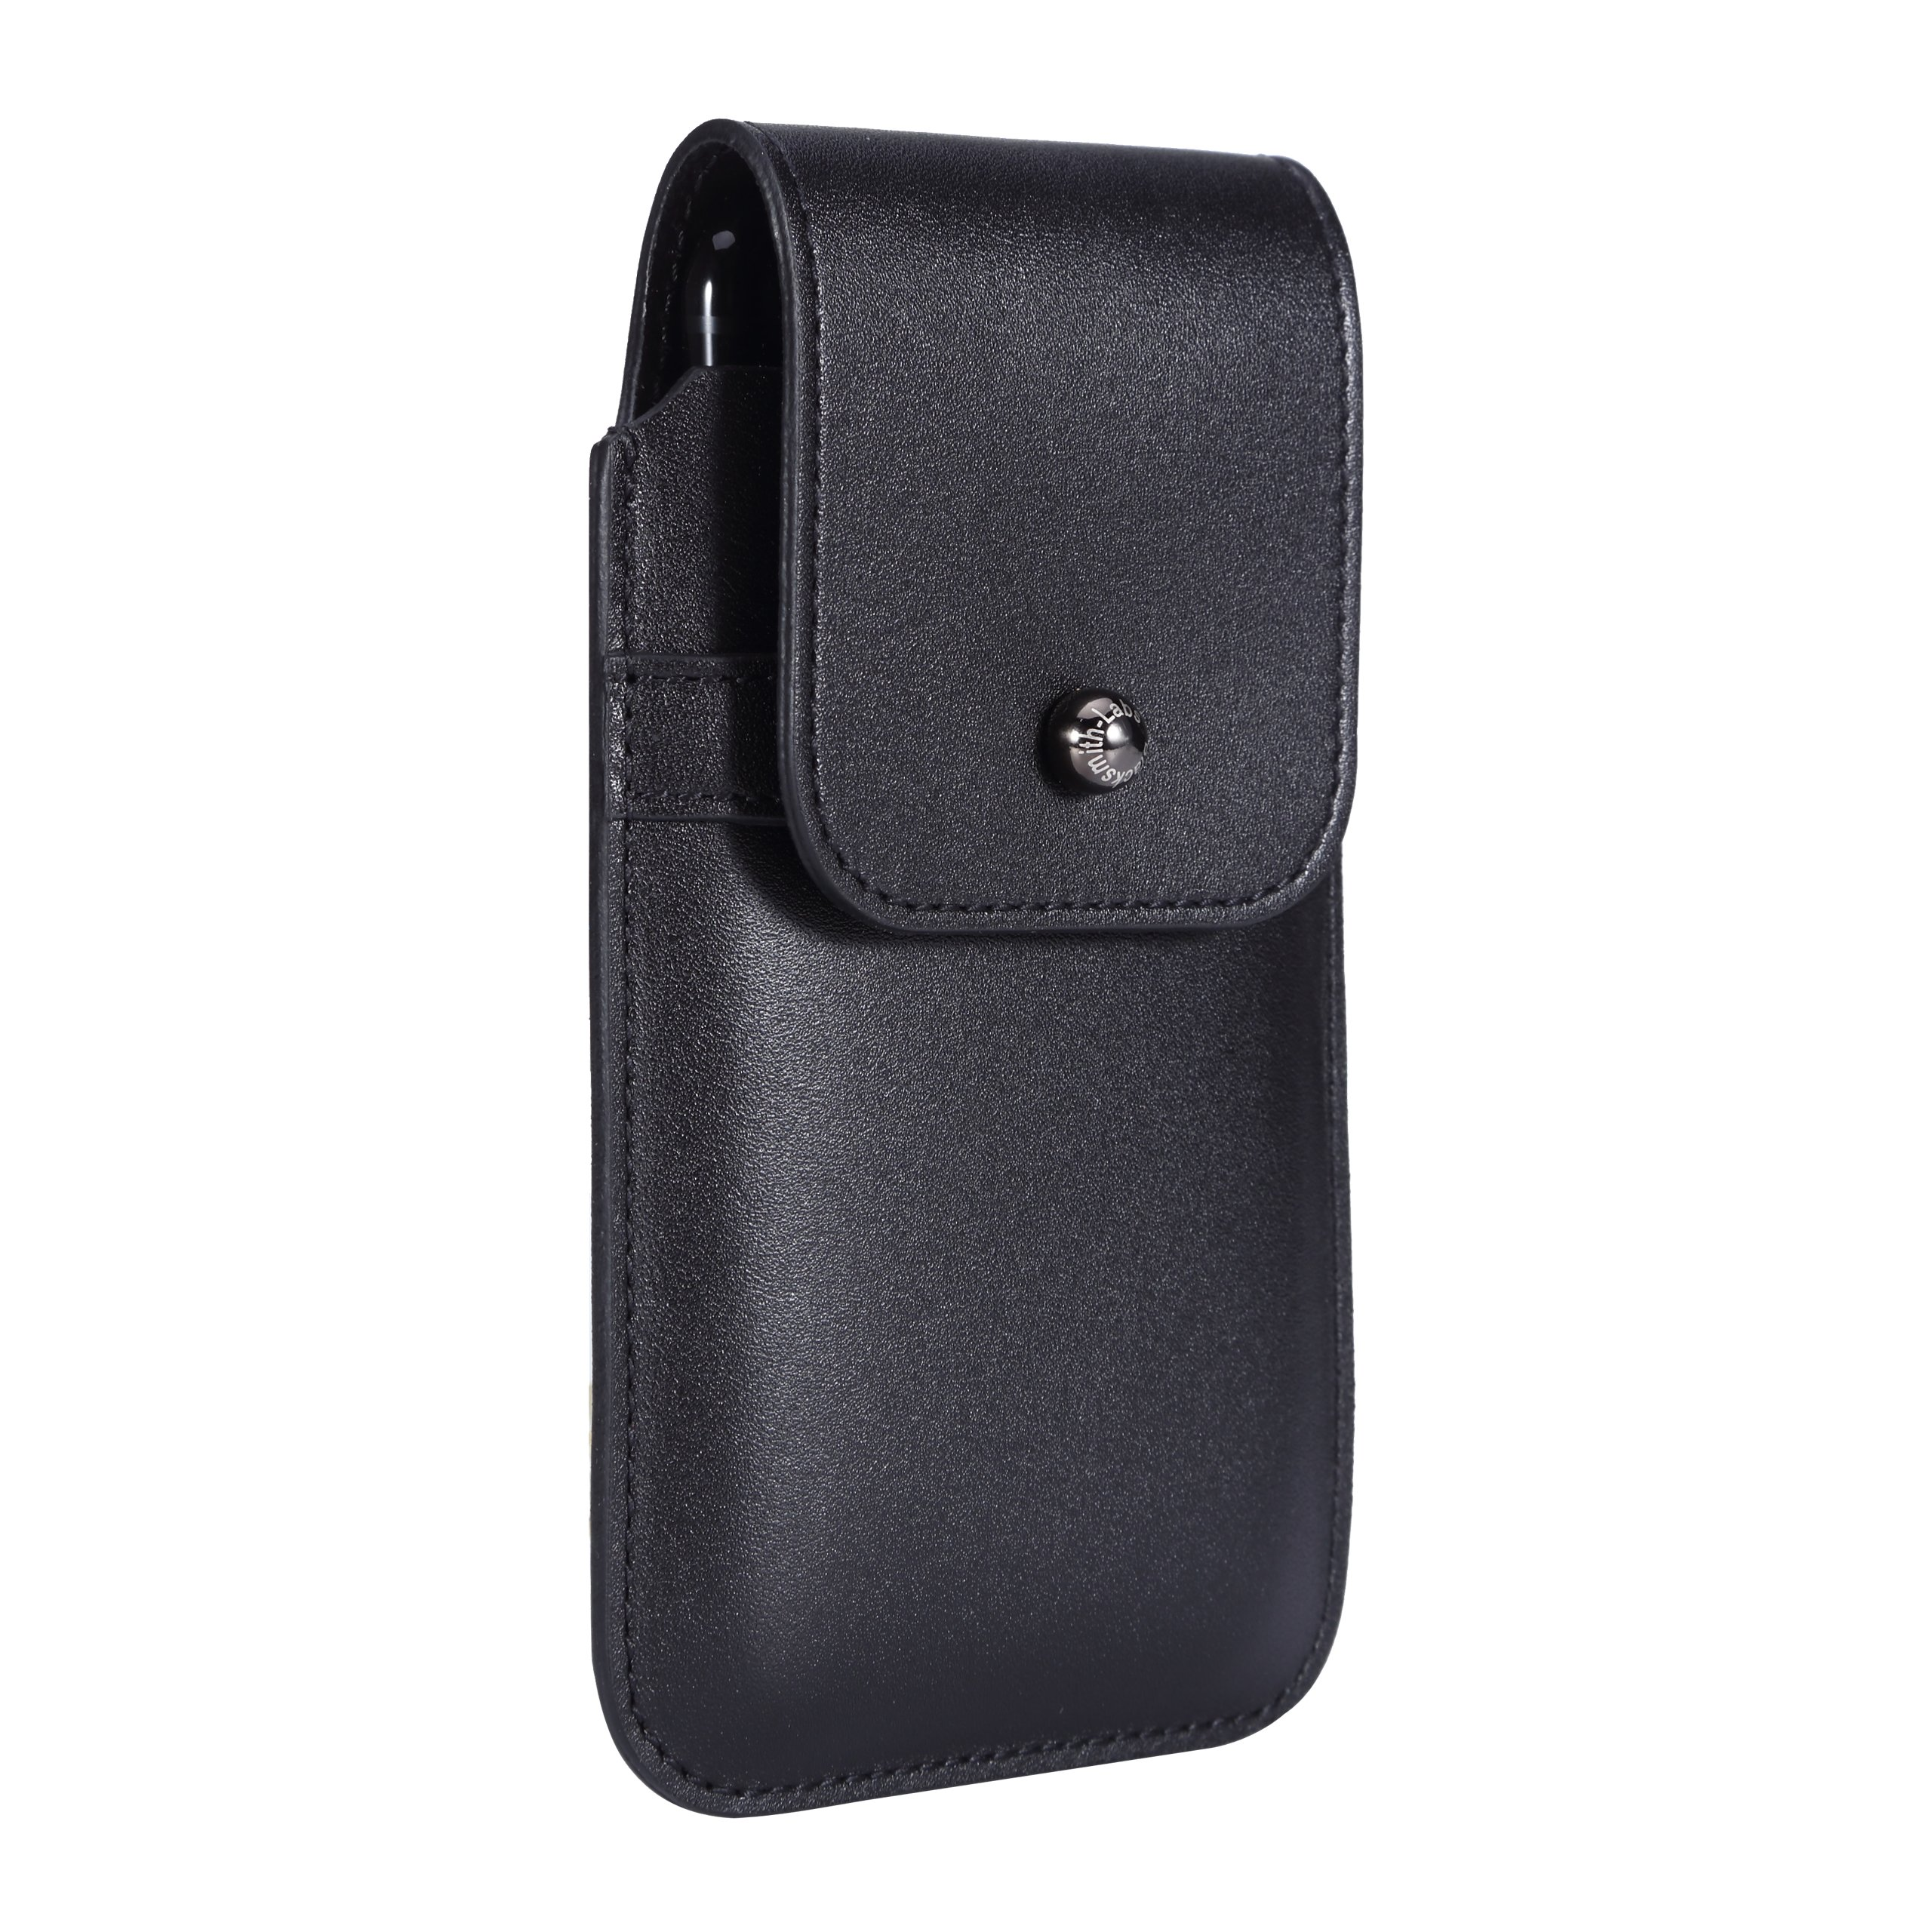 Blacksmith-Labs Barrett 2017 Premium Genuine Leather Swivel Belt Clip Holster for Apple iPhone 6/6s/7 (4.7 inch screen) for use with no cases or covers - Black Cowhide/Gunmetal Belt Clip